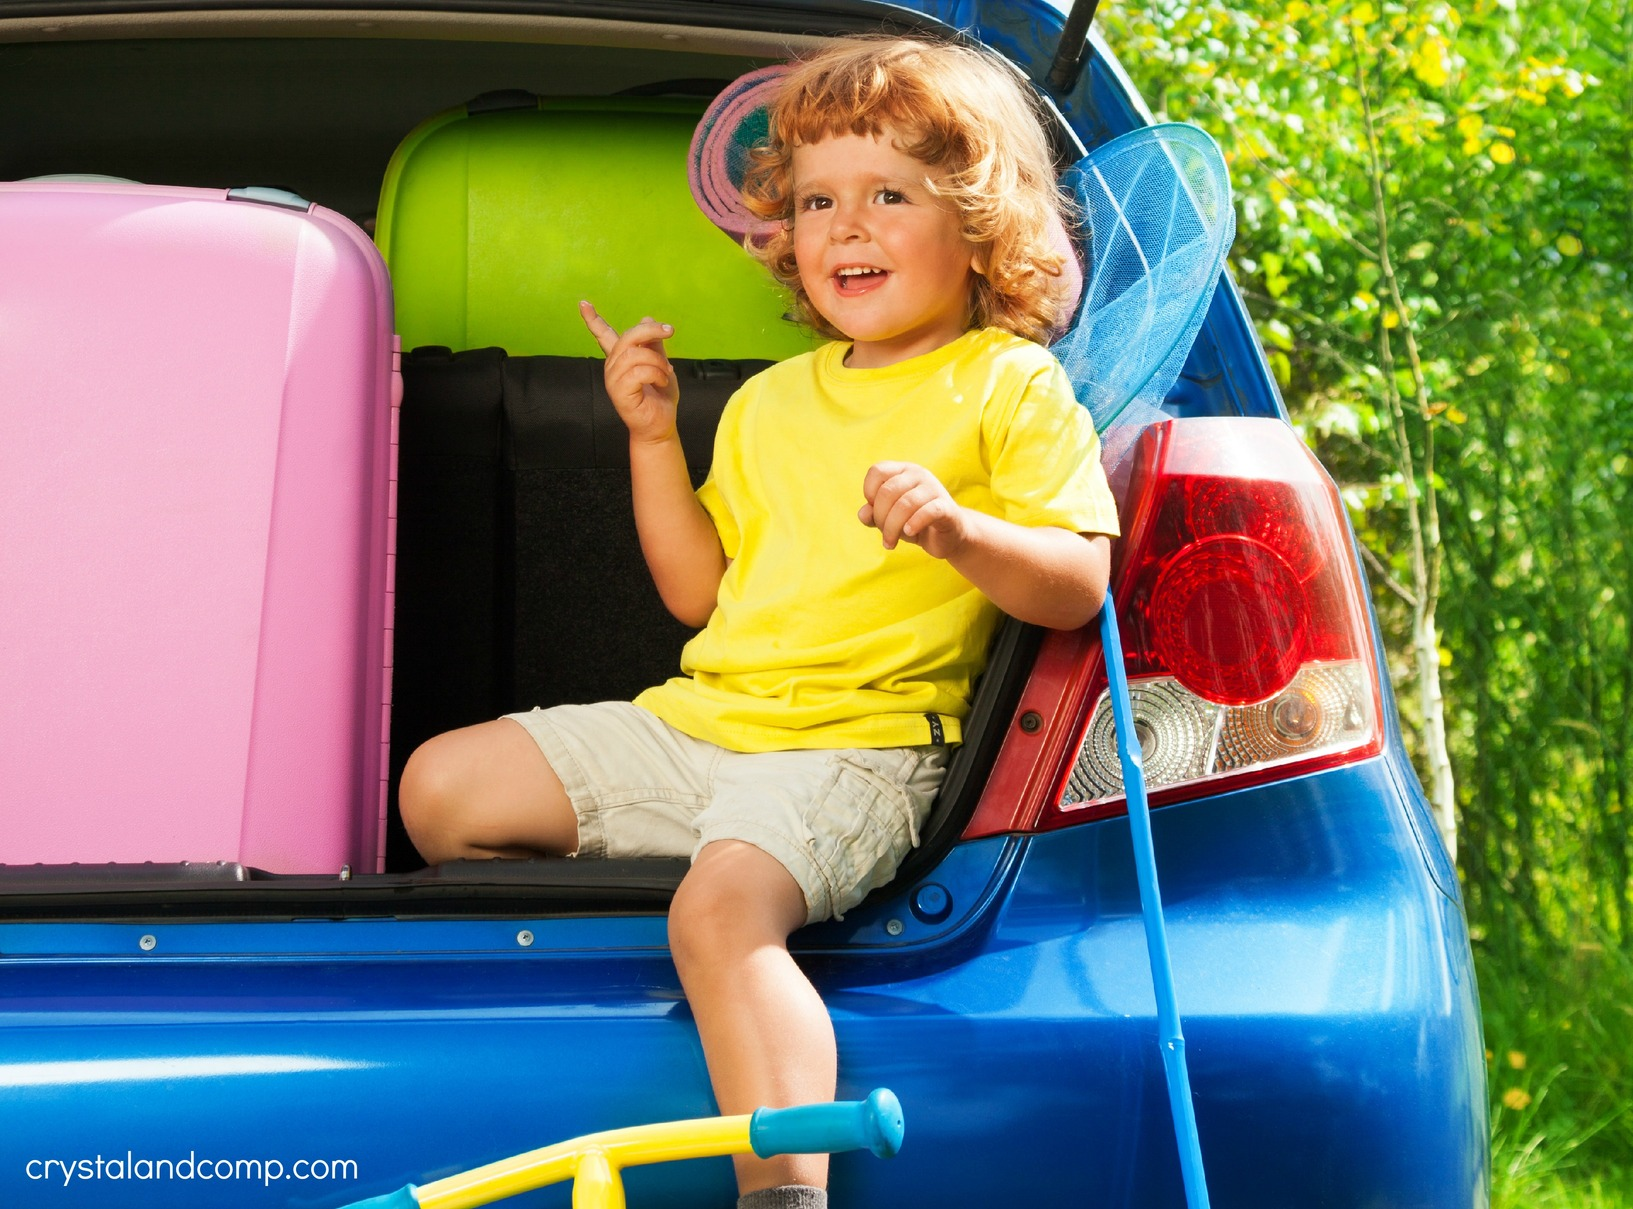 Activities For Kids: 10 Ideas For 2 Year Olds In The Car